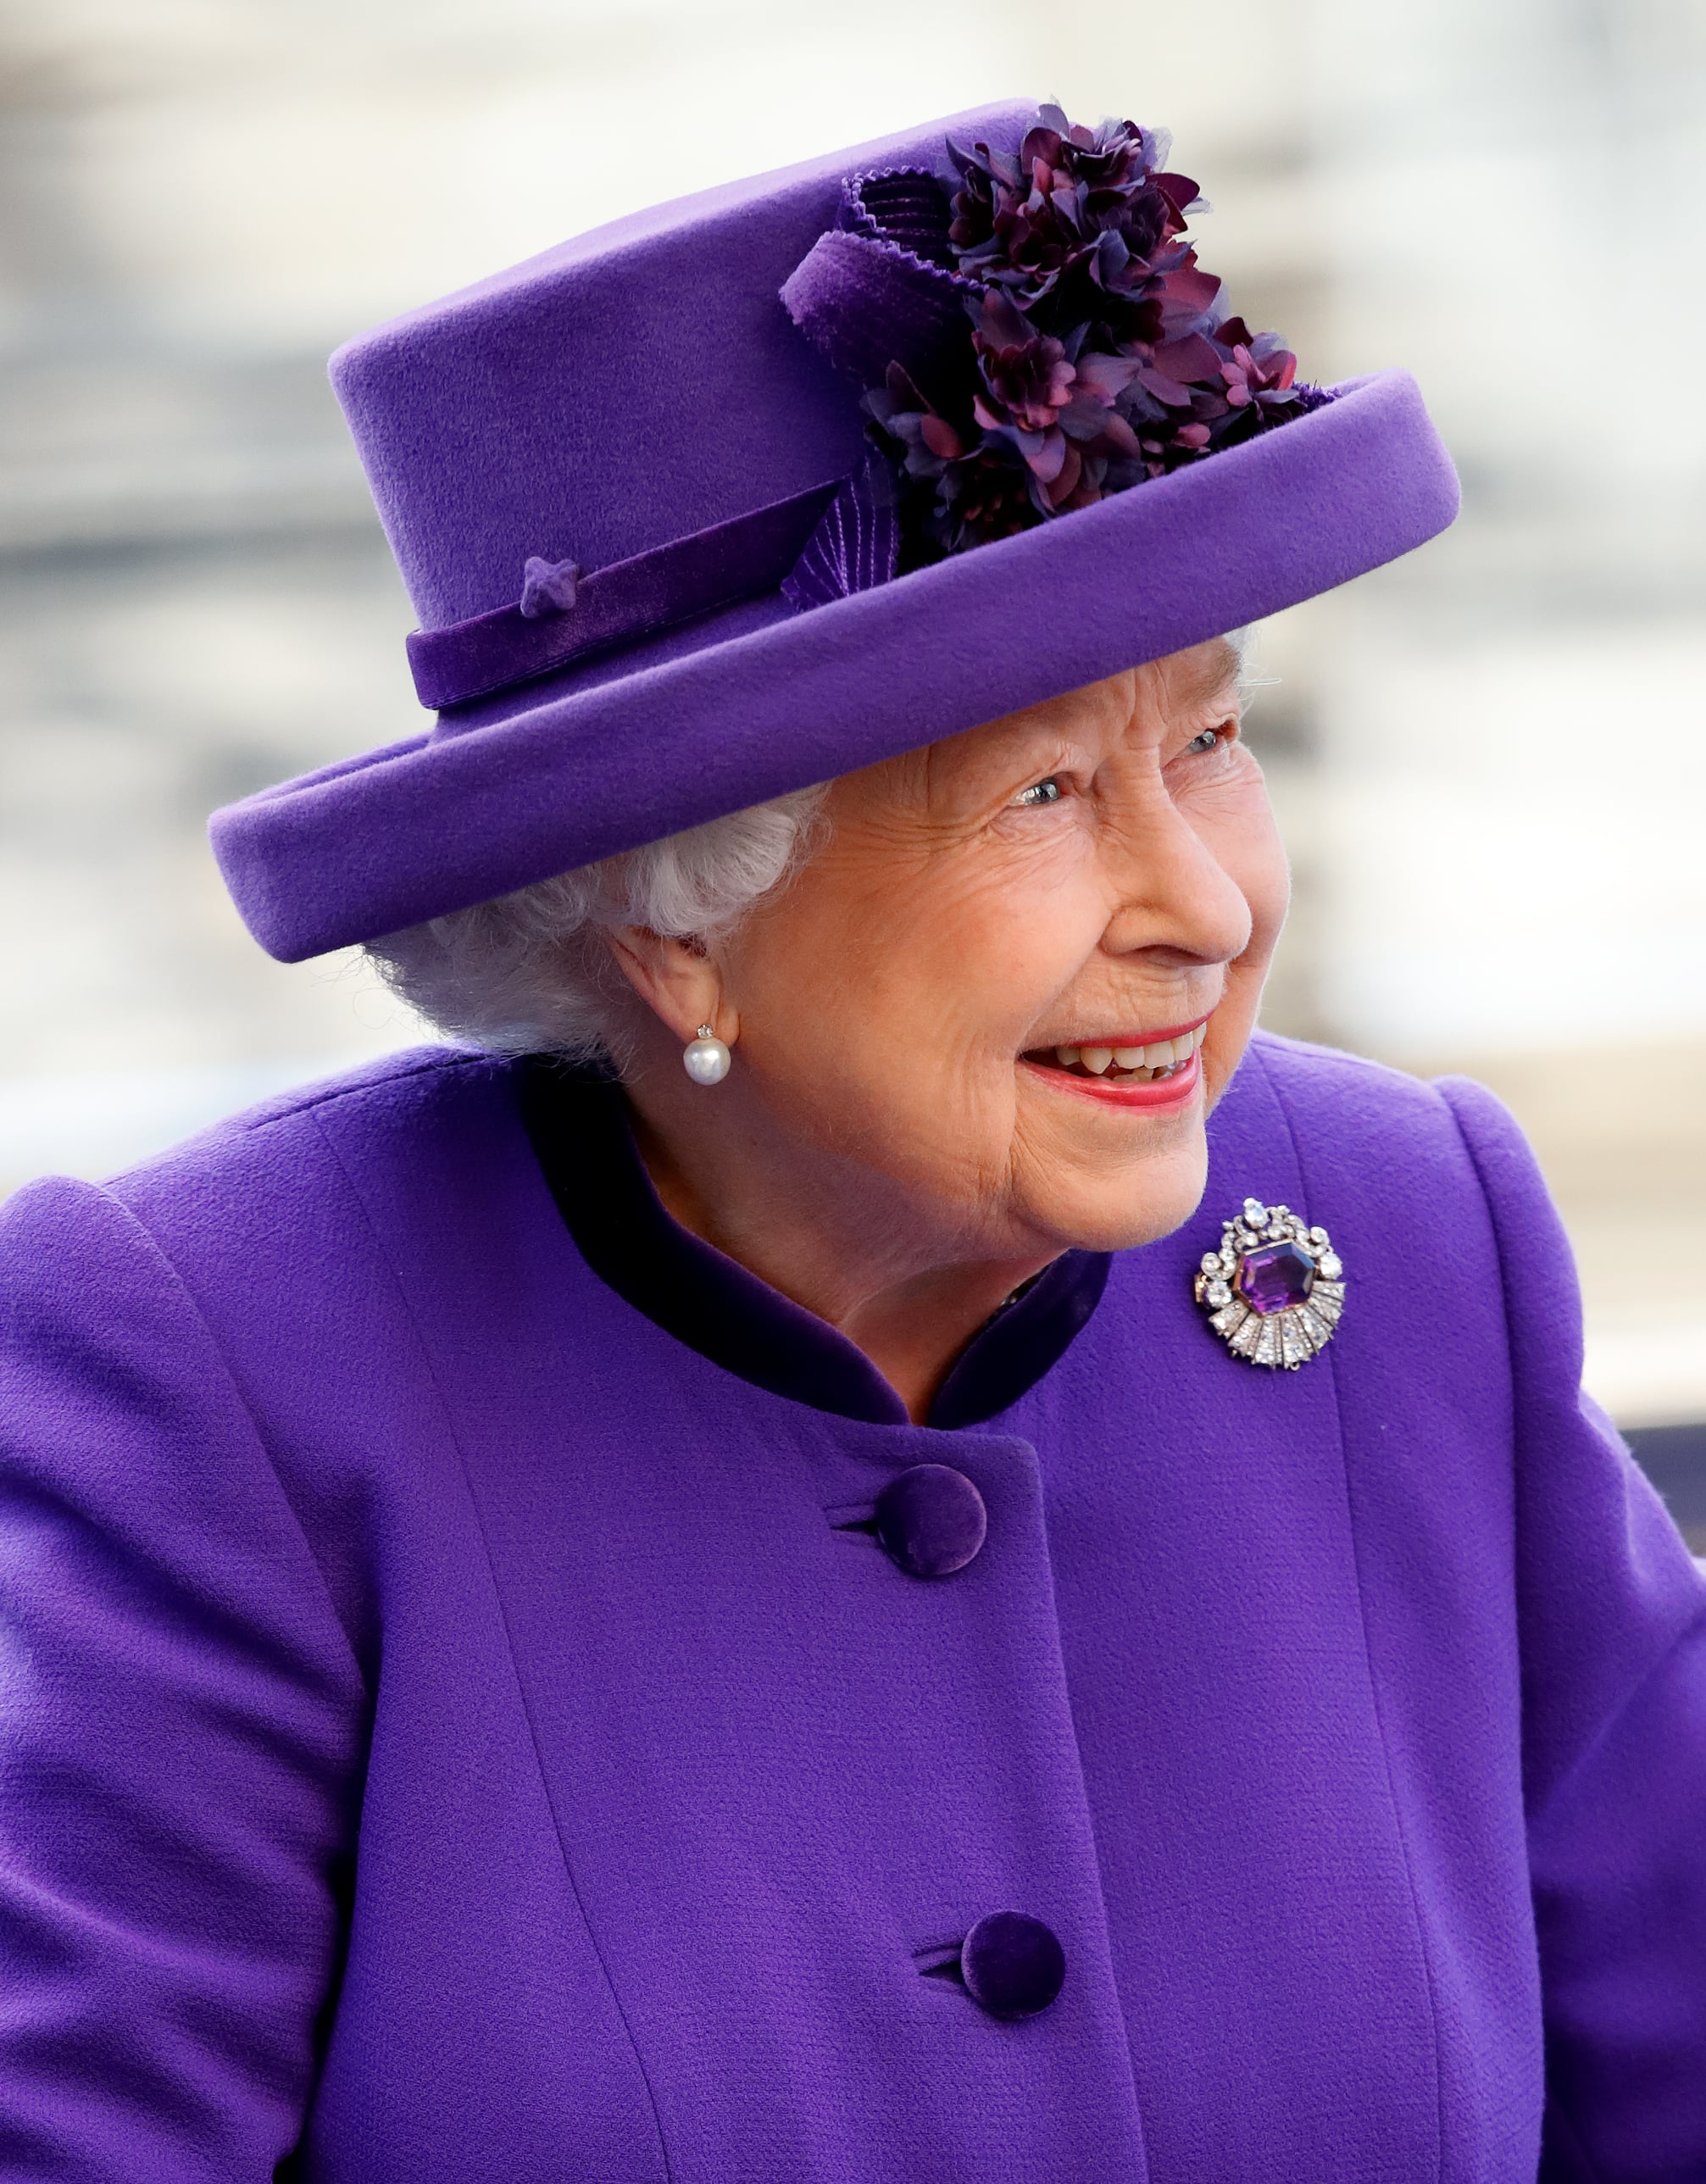 LONDON, UNITED KINGDOM - MARCH 11: (EMBARGOED FOR PUBLICATION IN UK NEWSPAPERS UNTIL 24 HOURS AFTER CREATE DATE AND TIME) Queen Elizabeth II attends the 2019 Commonwealth Day service at Westminster Abbey on March 11, 2019 in London, England. (Photo by Max Mumby/Indigo/Getty Images)